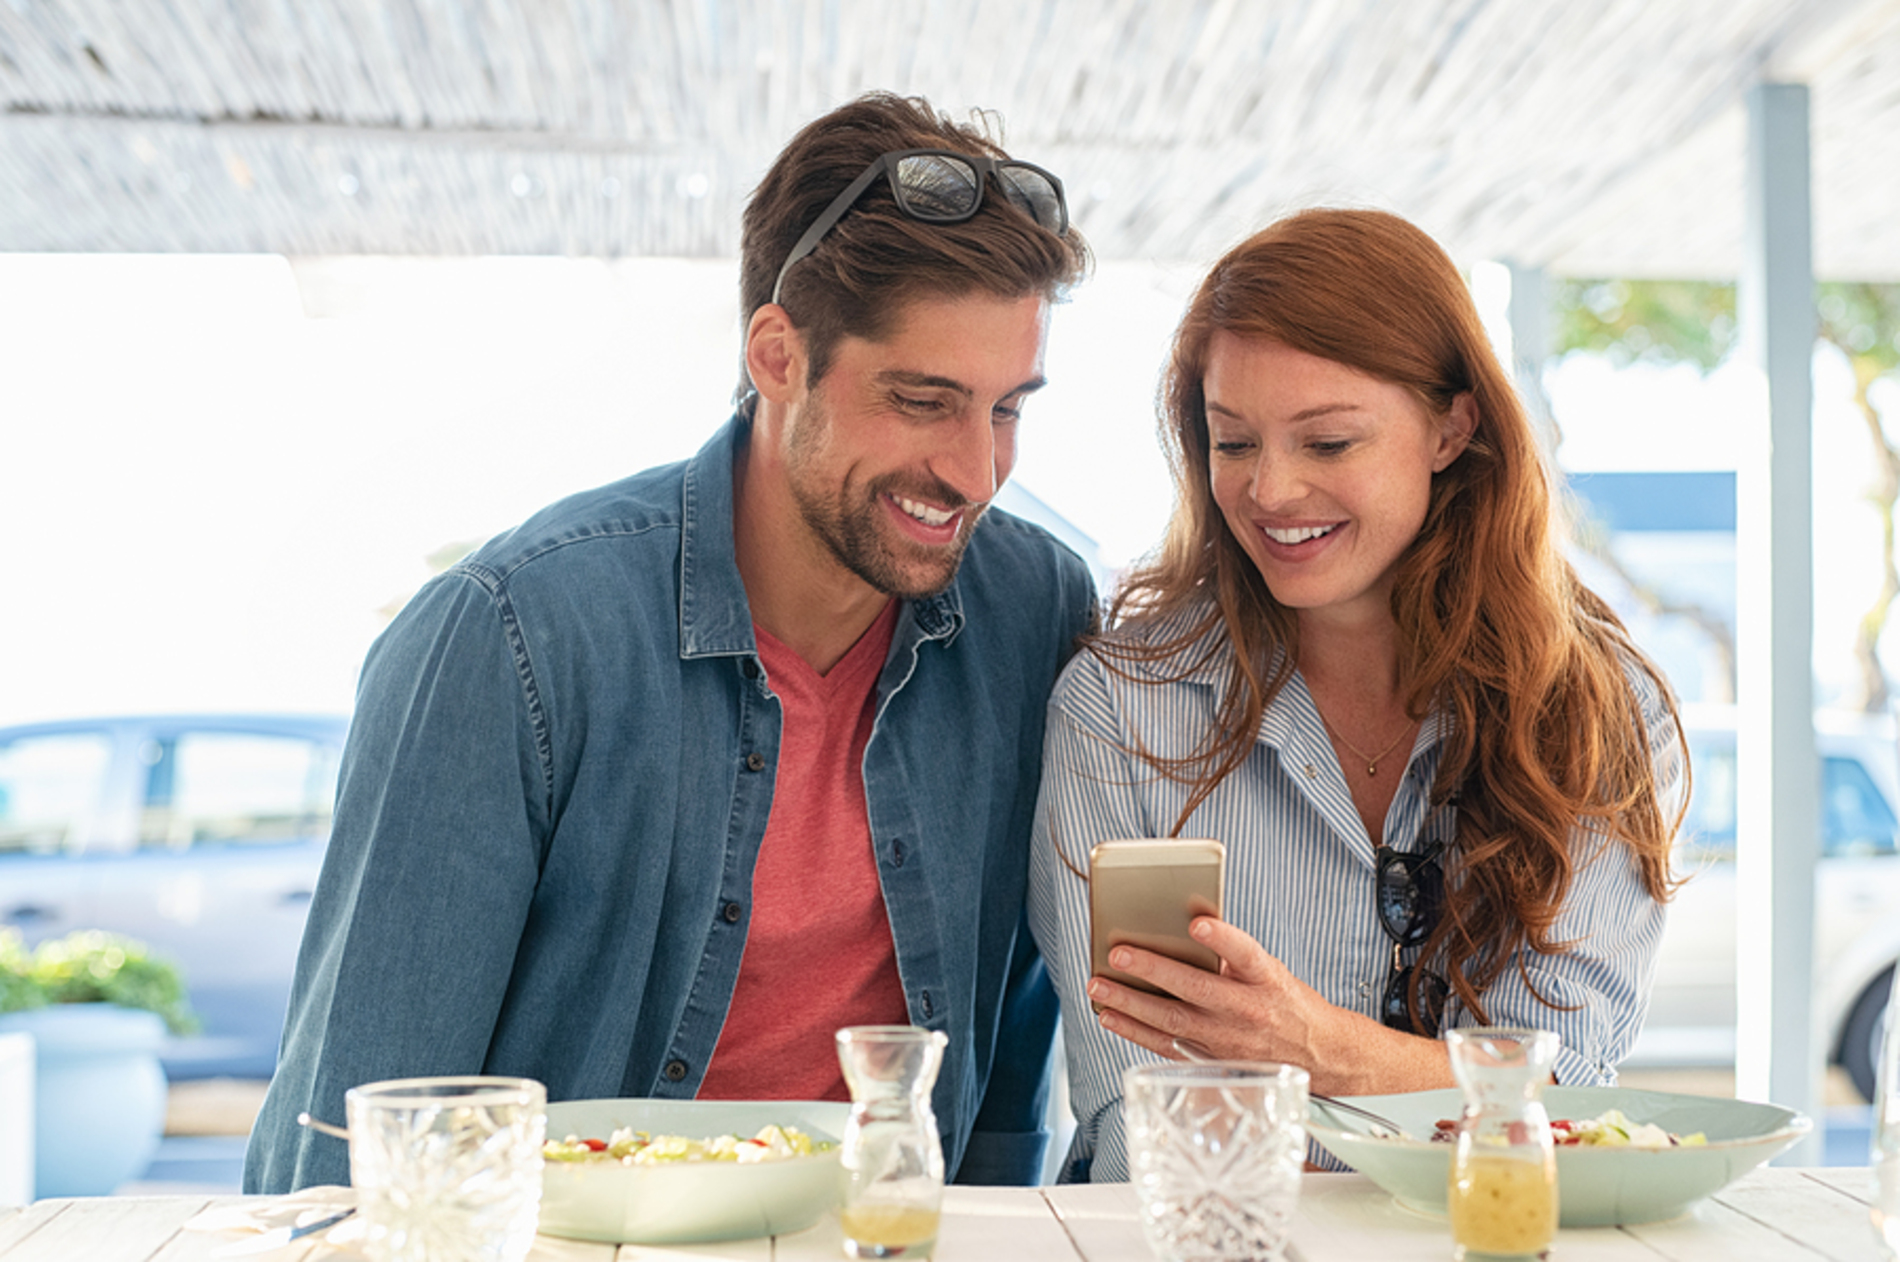 Couple sitting outside looking at a phone together while eating.